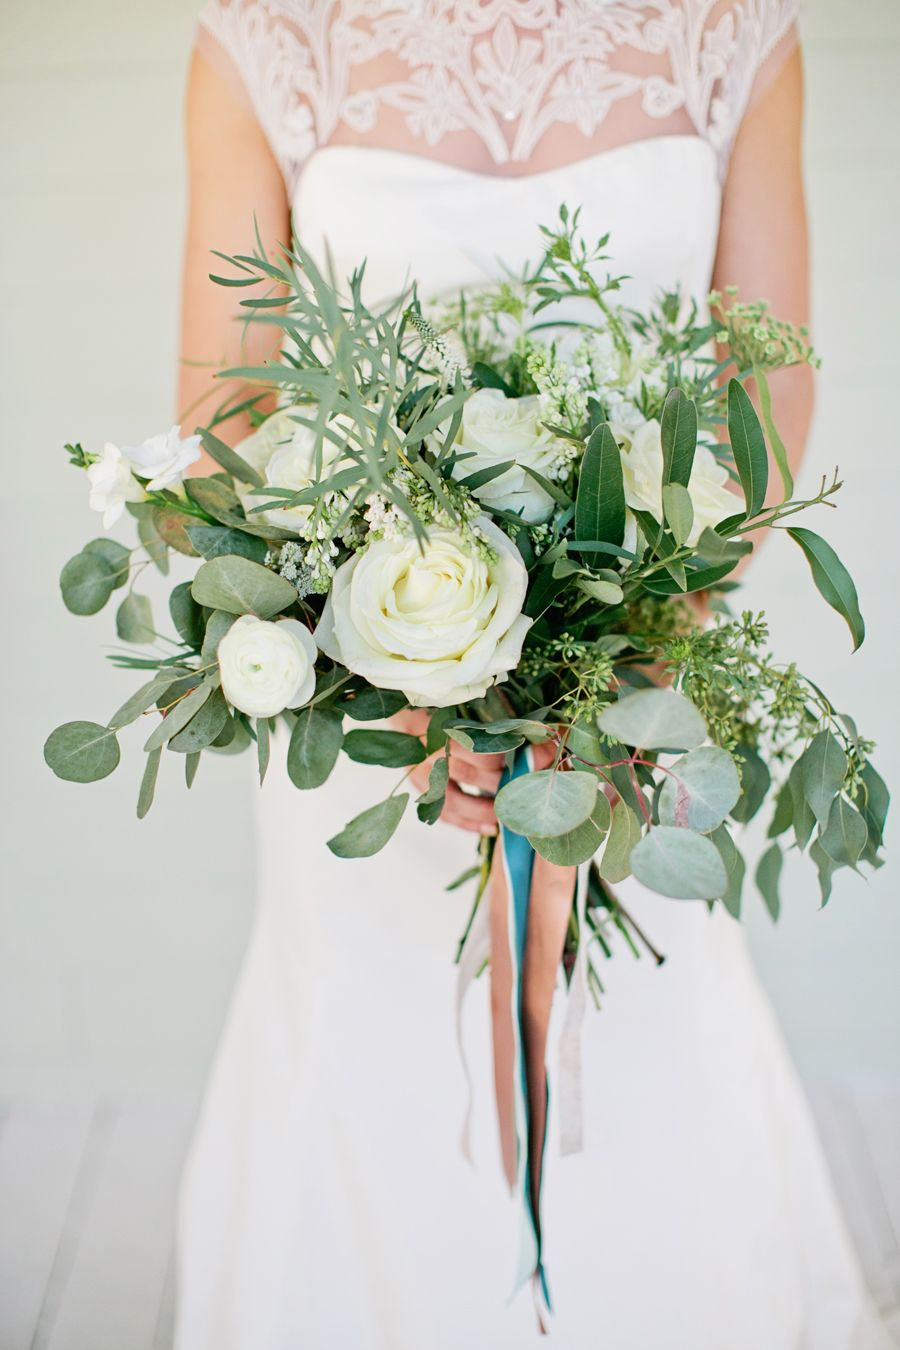 White rose and greenery bouquet bouquets pinterest wedding bride bouquet style off white roses and lots of greenery just picked with some hanging stray bits of greenery maybe smaller than this though izmirmasajfo